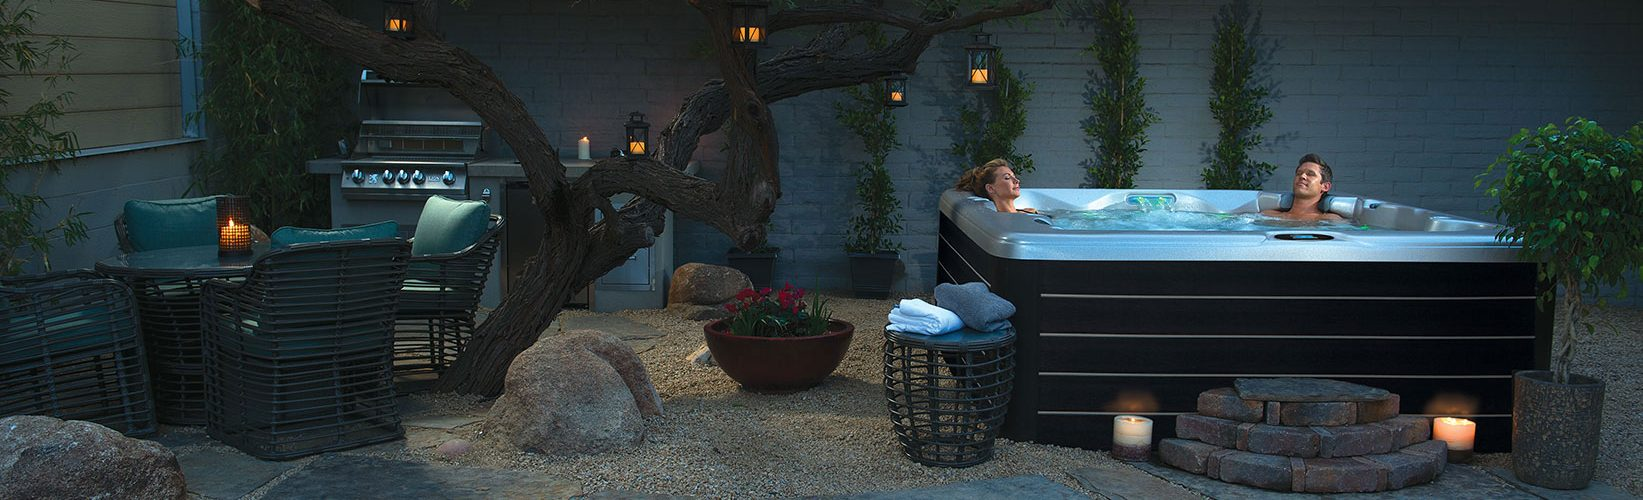 Backyard Spa Retreat